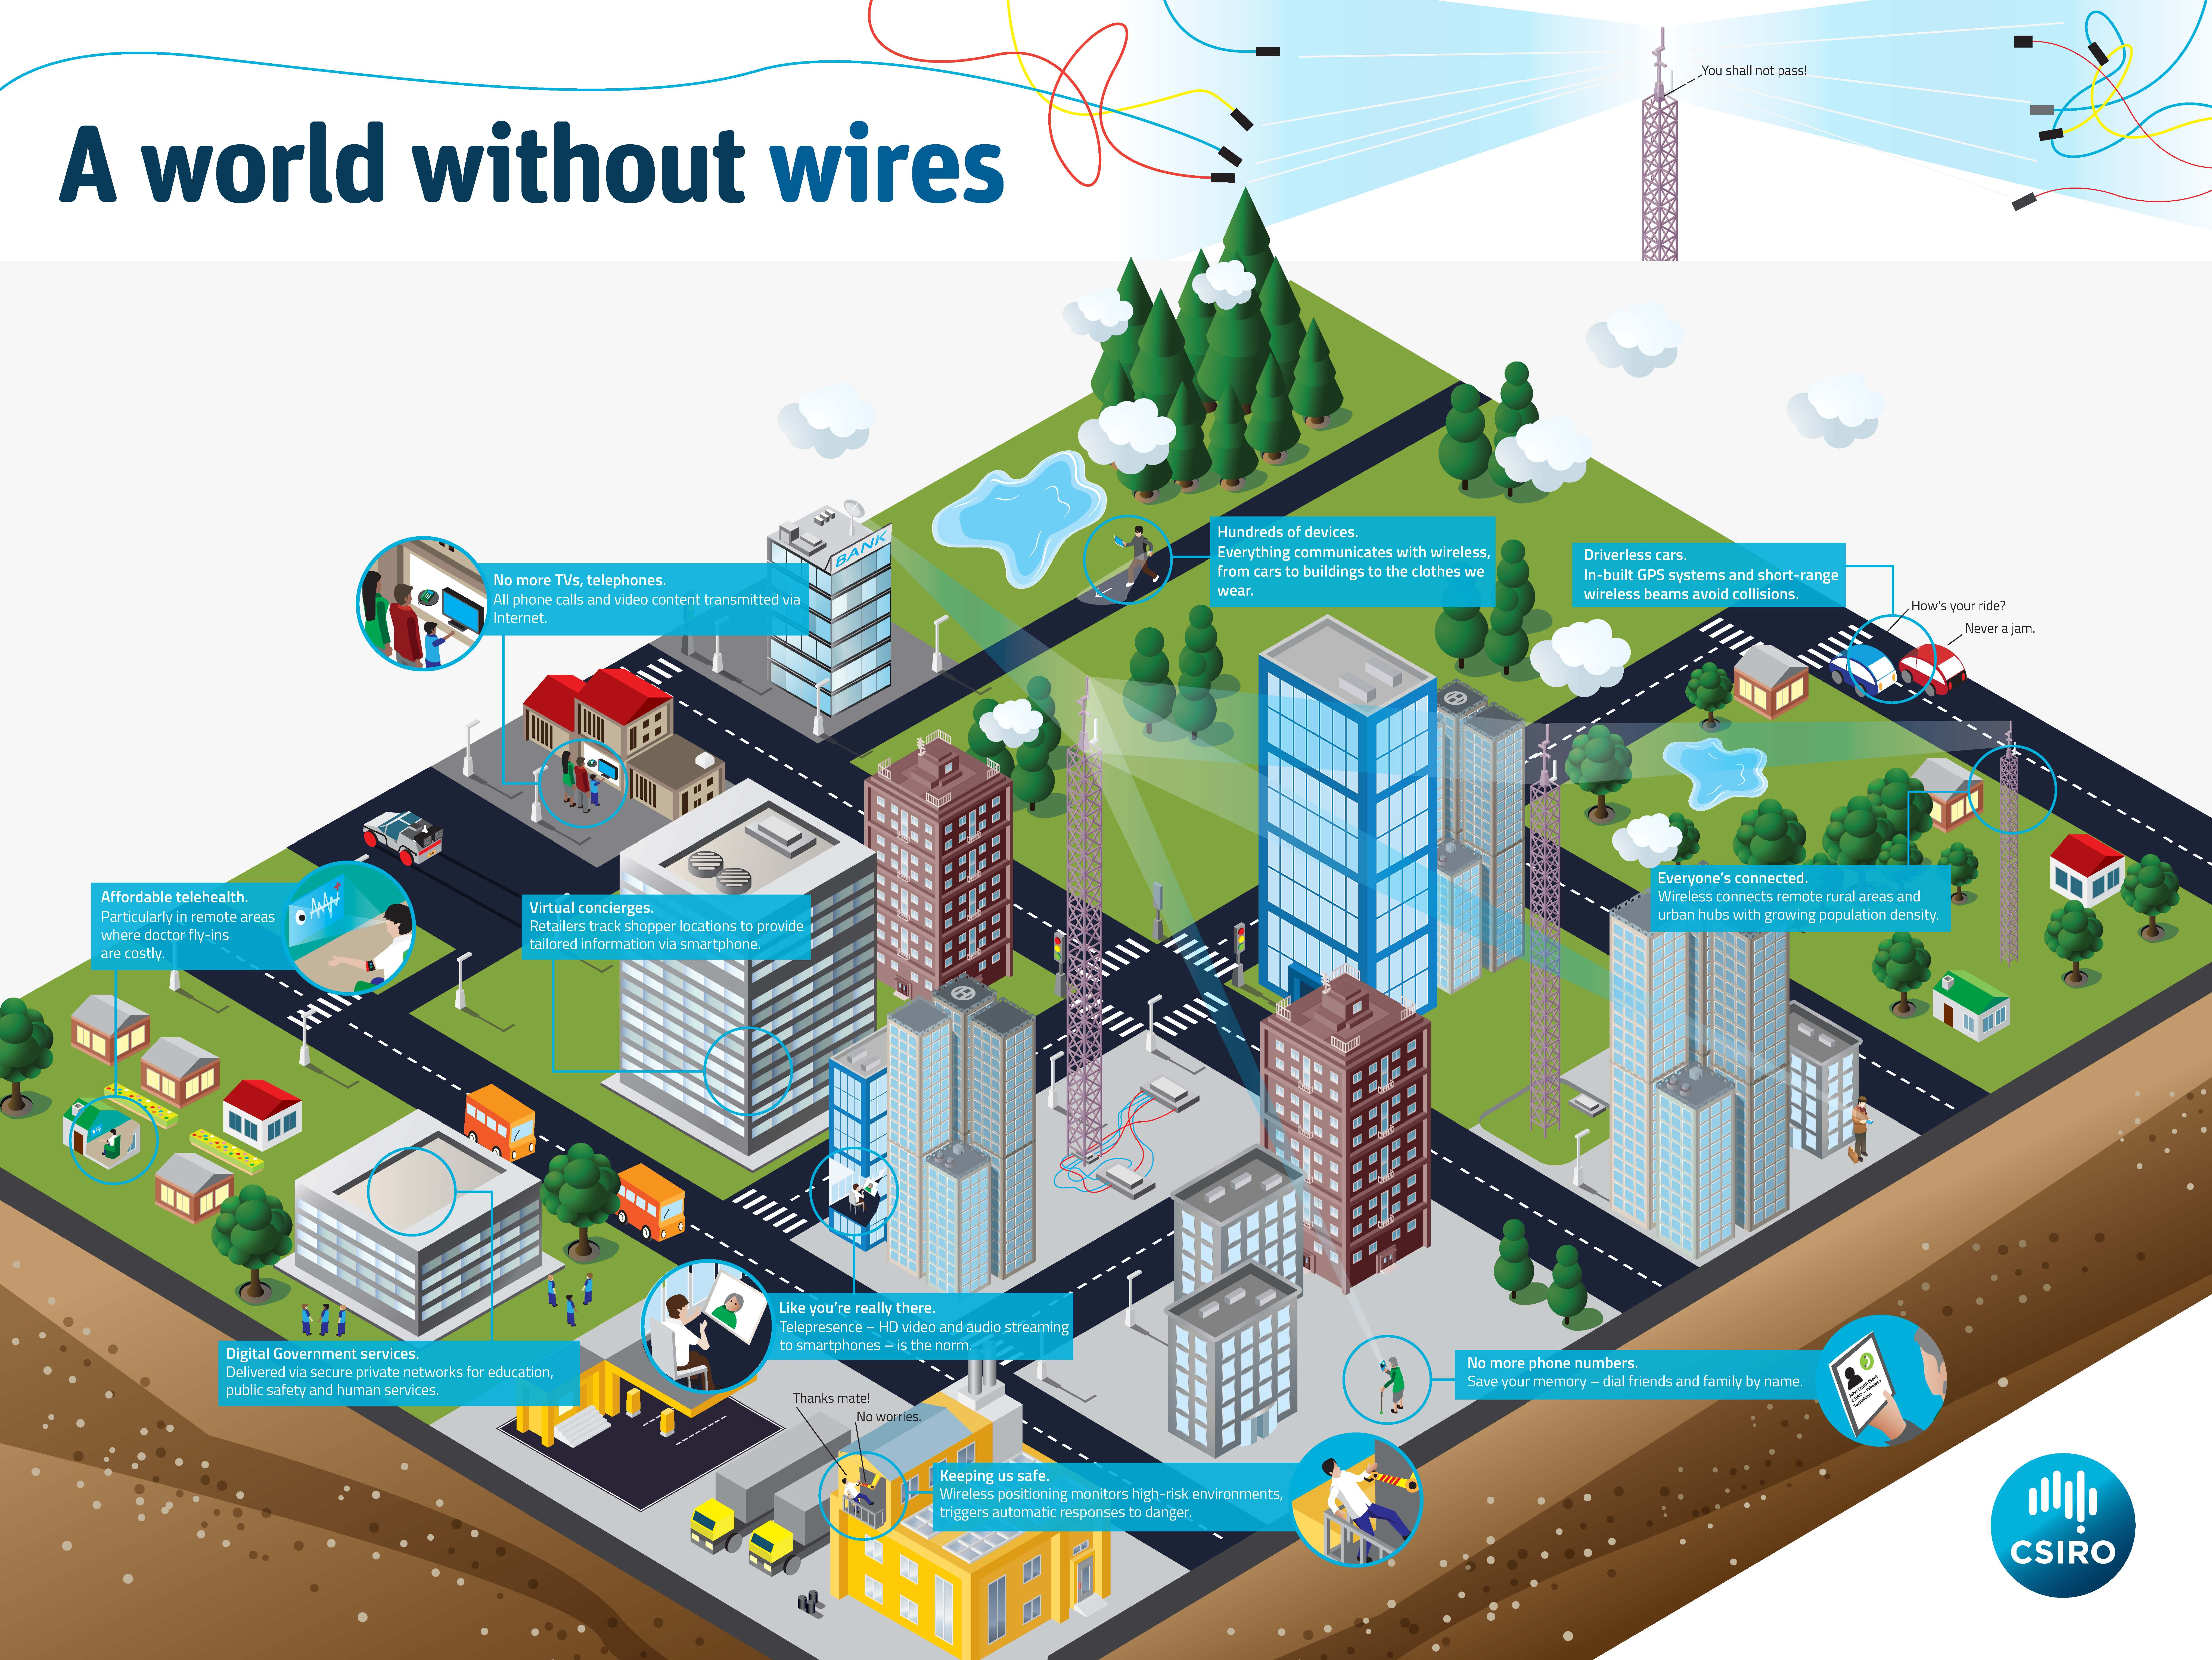 Infographic showing A world without wires.